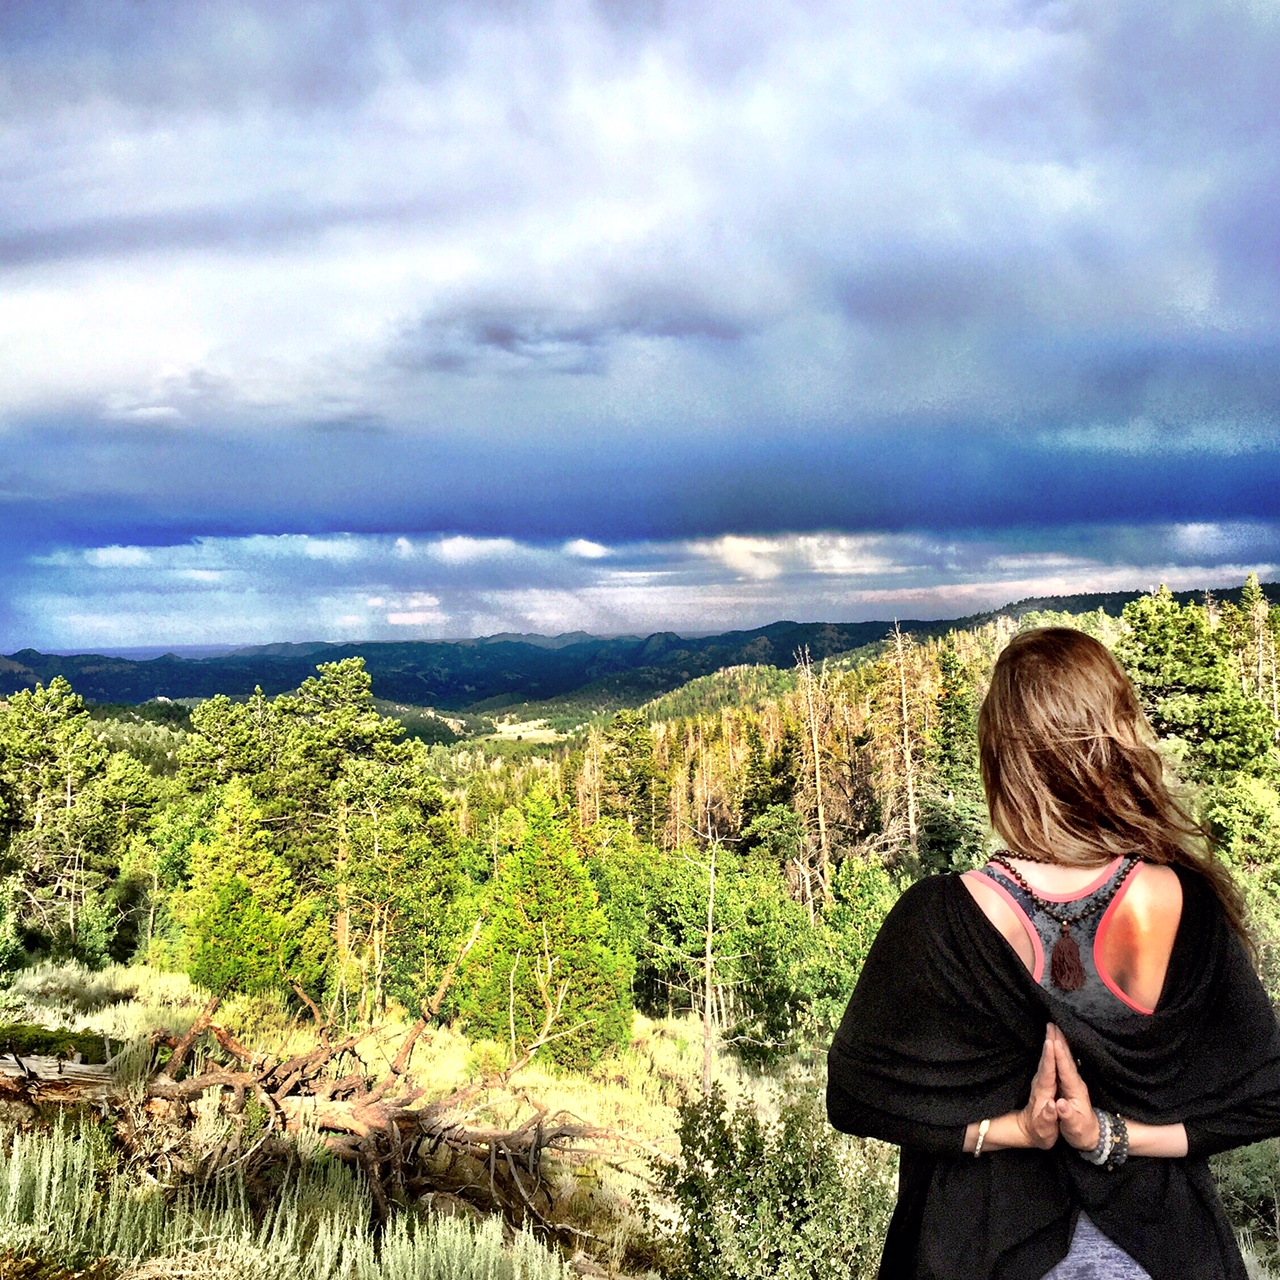 Colorado Shambhala Mountains... Soon thereafter a double rainbow appeared